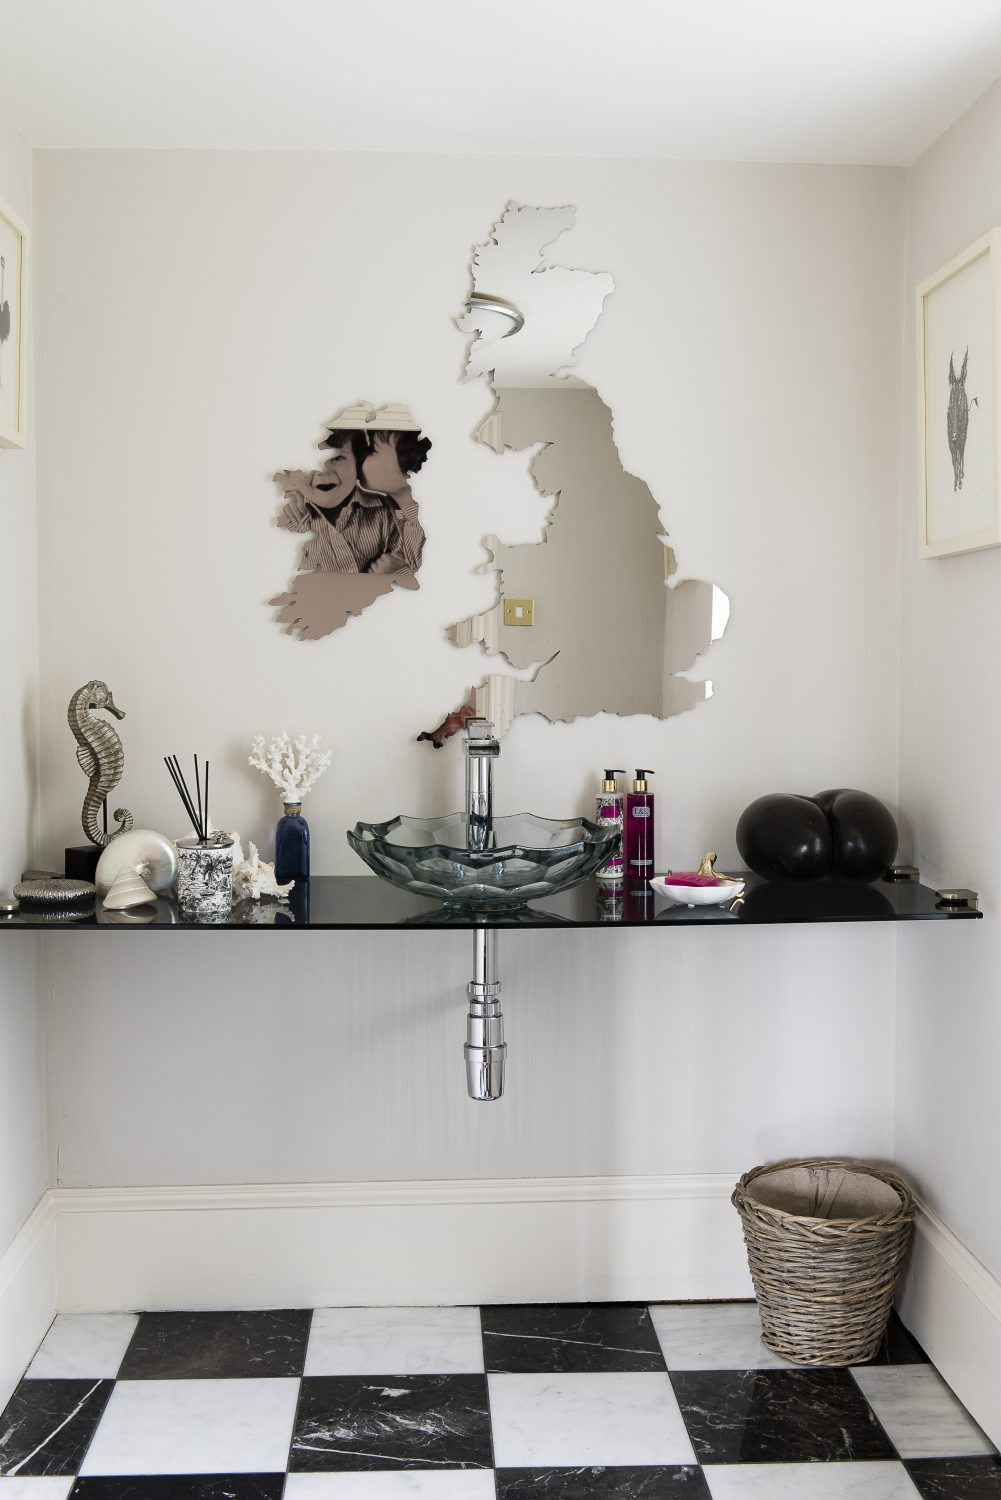 A bespoke laser-cut United Kingdom and Ireland mirror in the downstairs loo